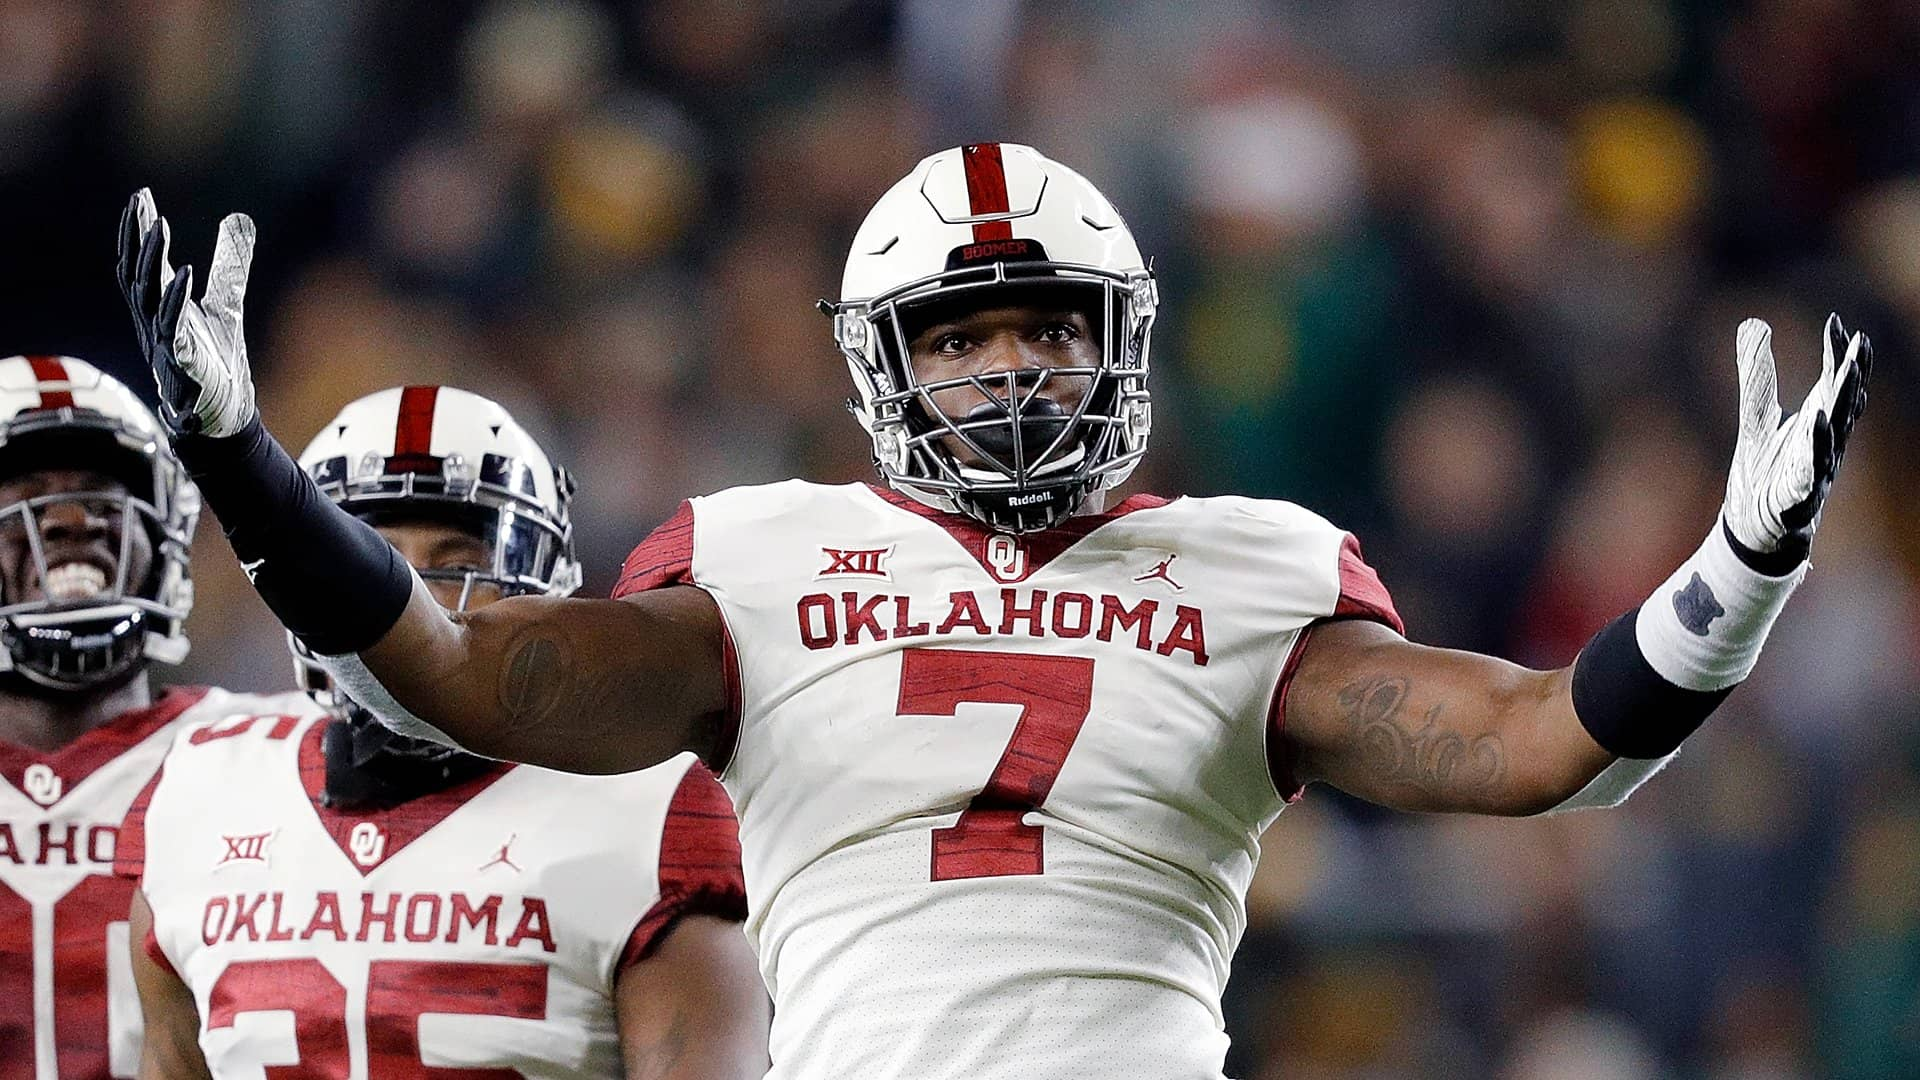 Oklahoma defensive lineman Ronnie Perkins has ability to overcome current adversity